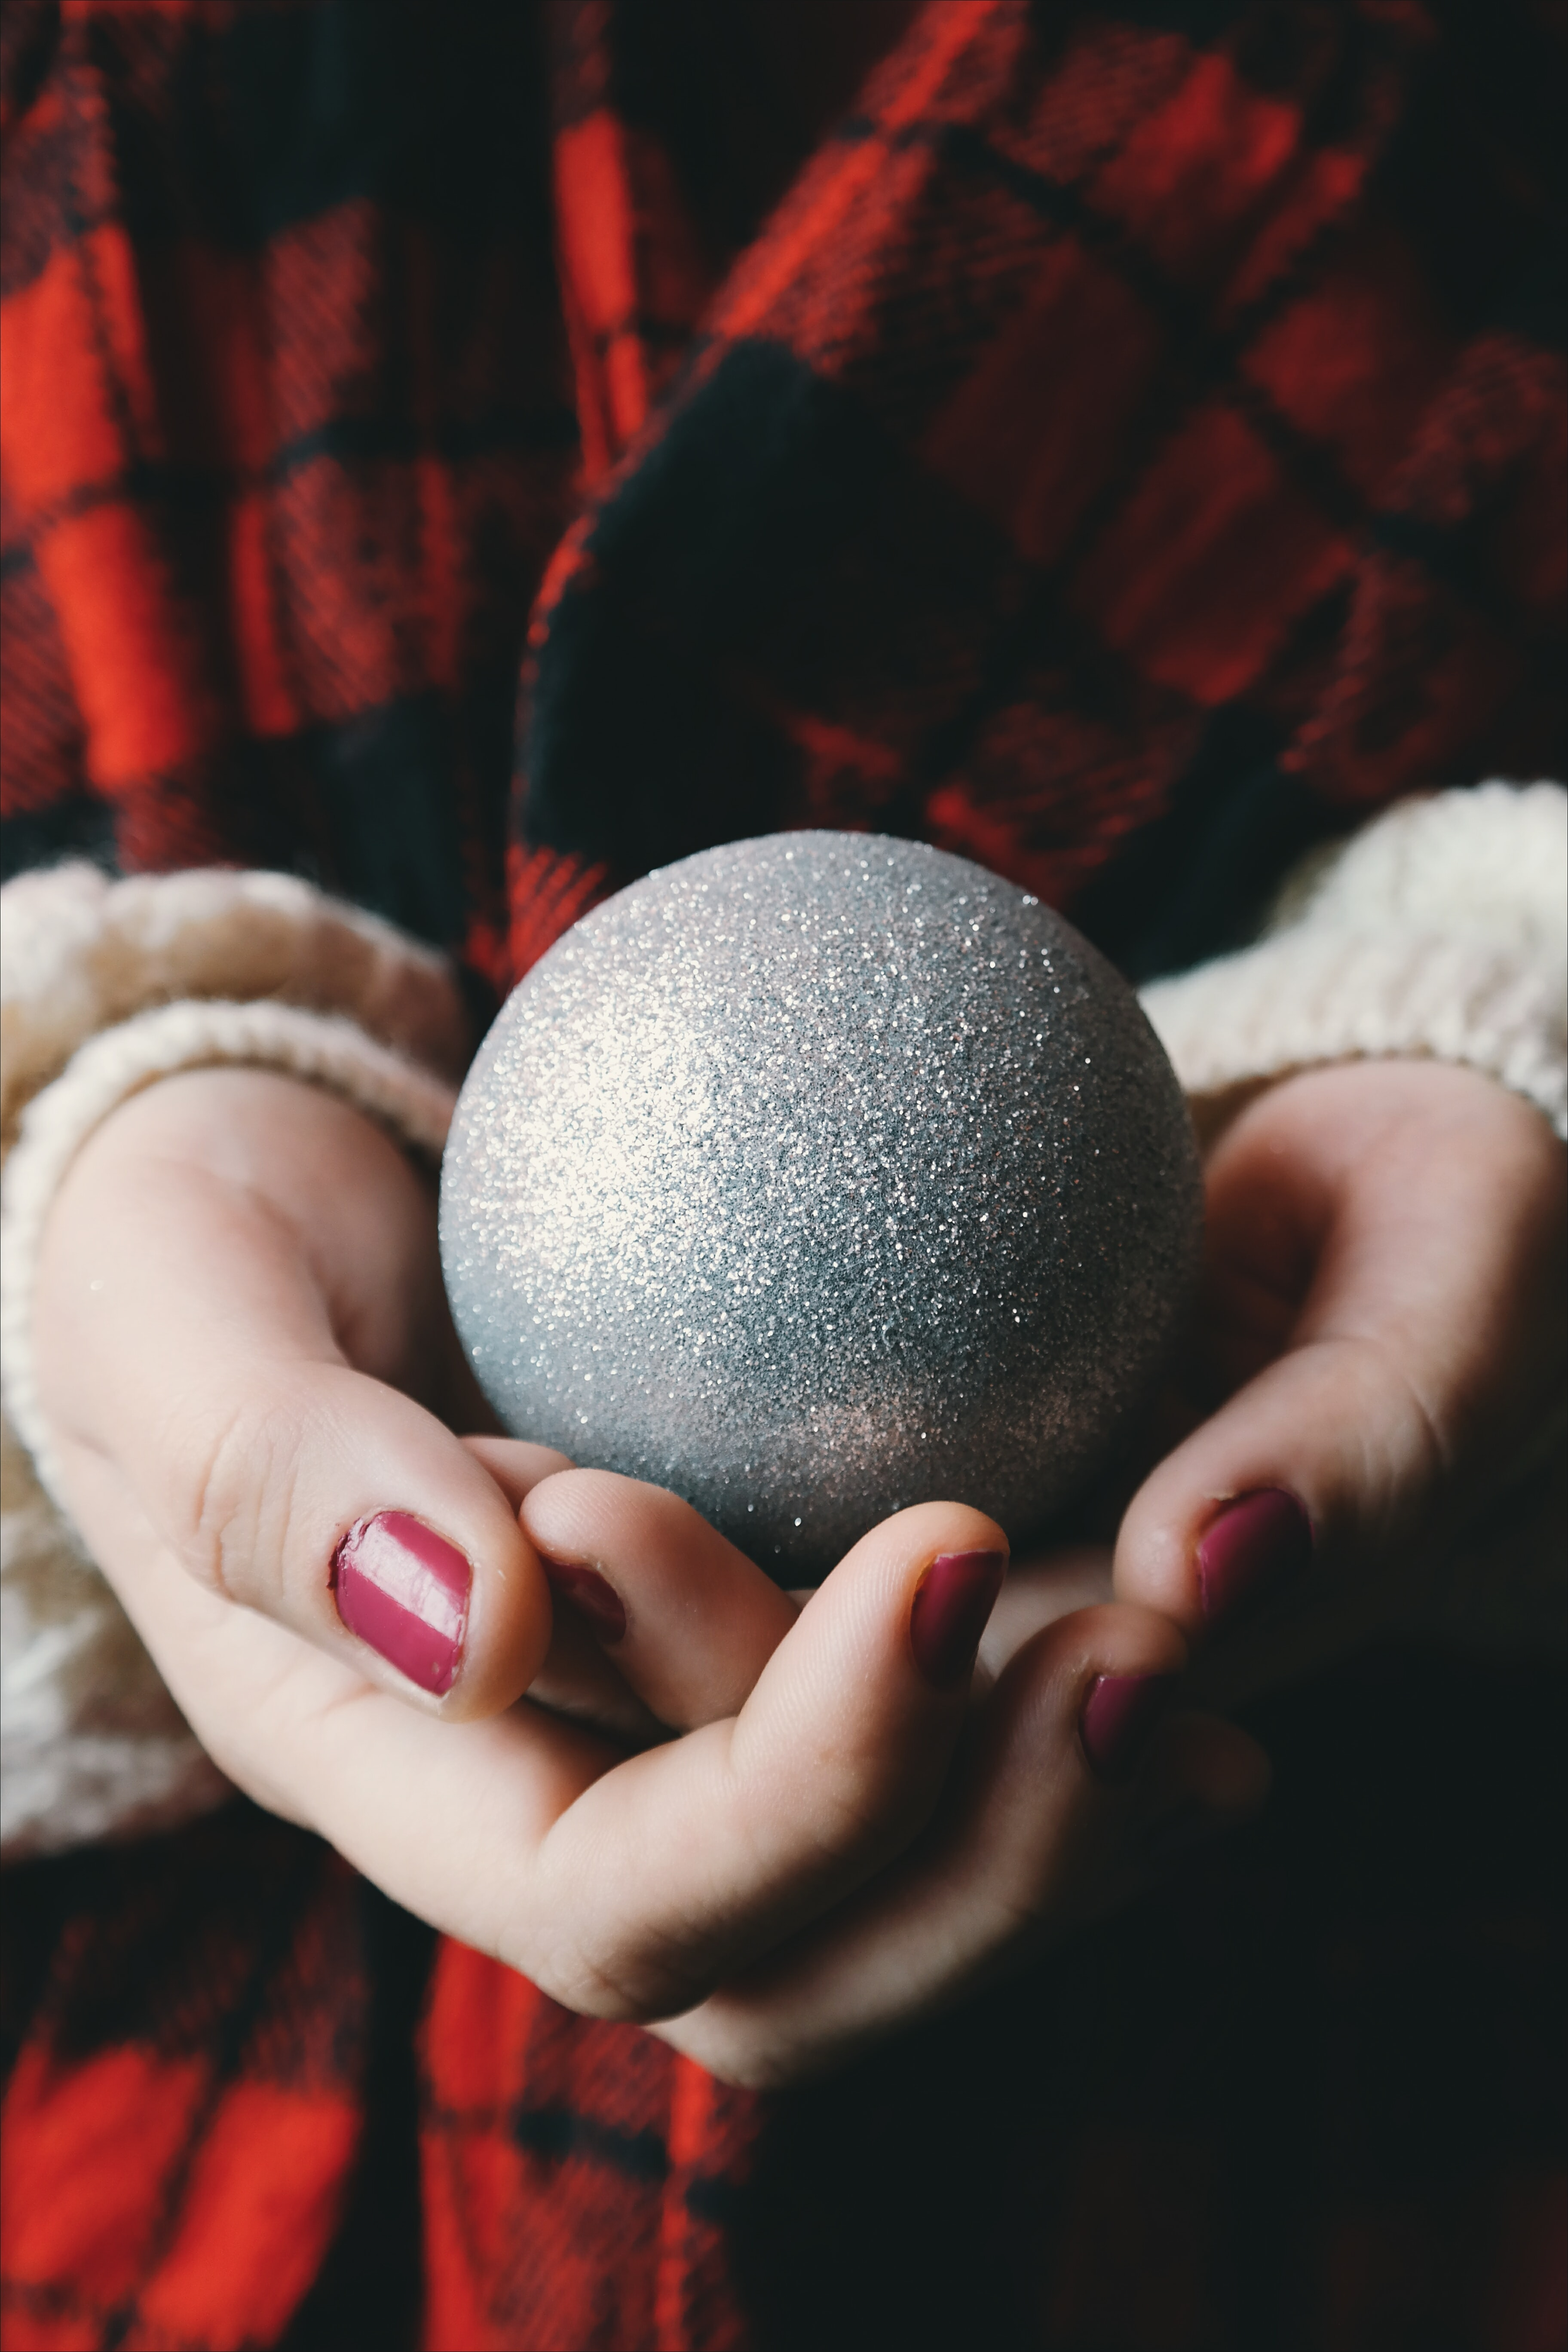 A woman with red painted nails holding a silver Christmas ornament.